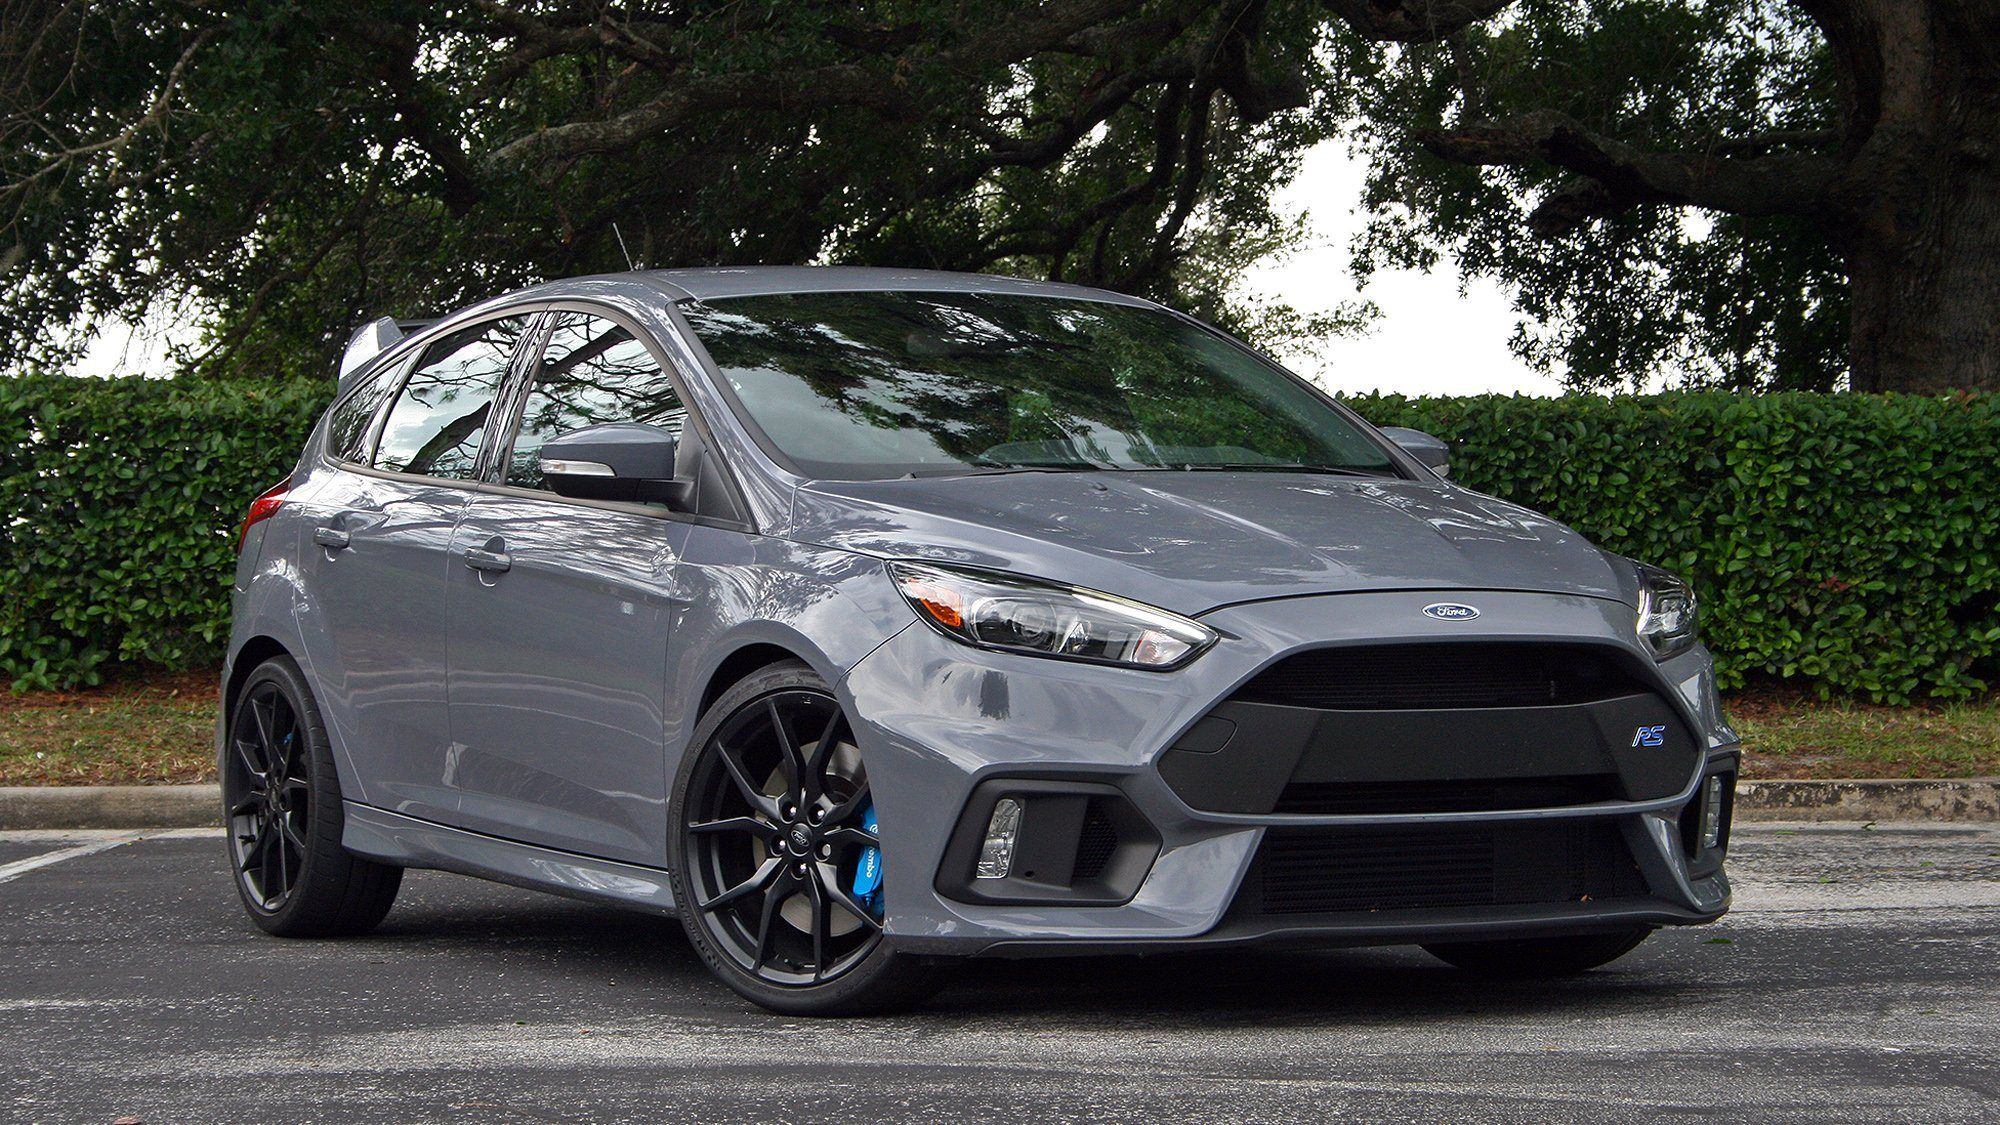 2021 Ford Focus Rs St Speed Test In 2020 Ford Focus Rs Focus Rs Ford Focus